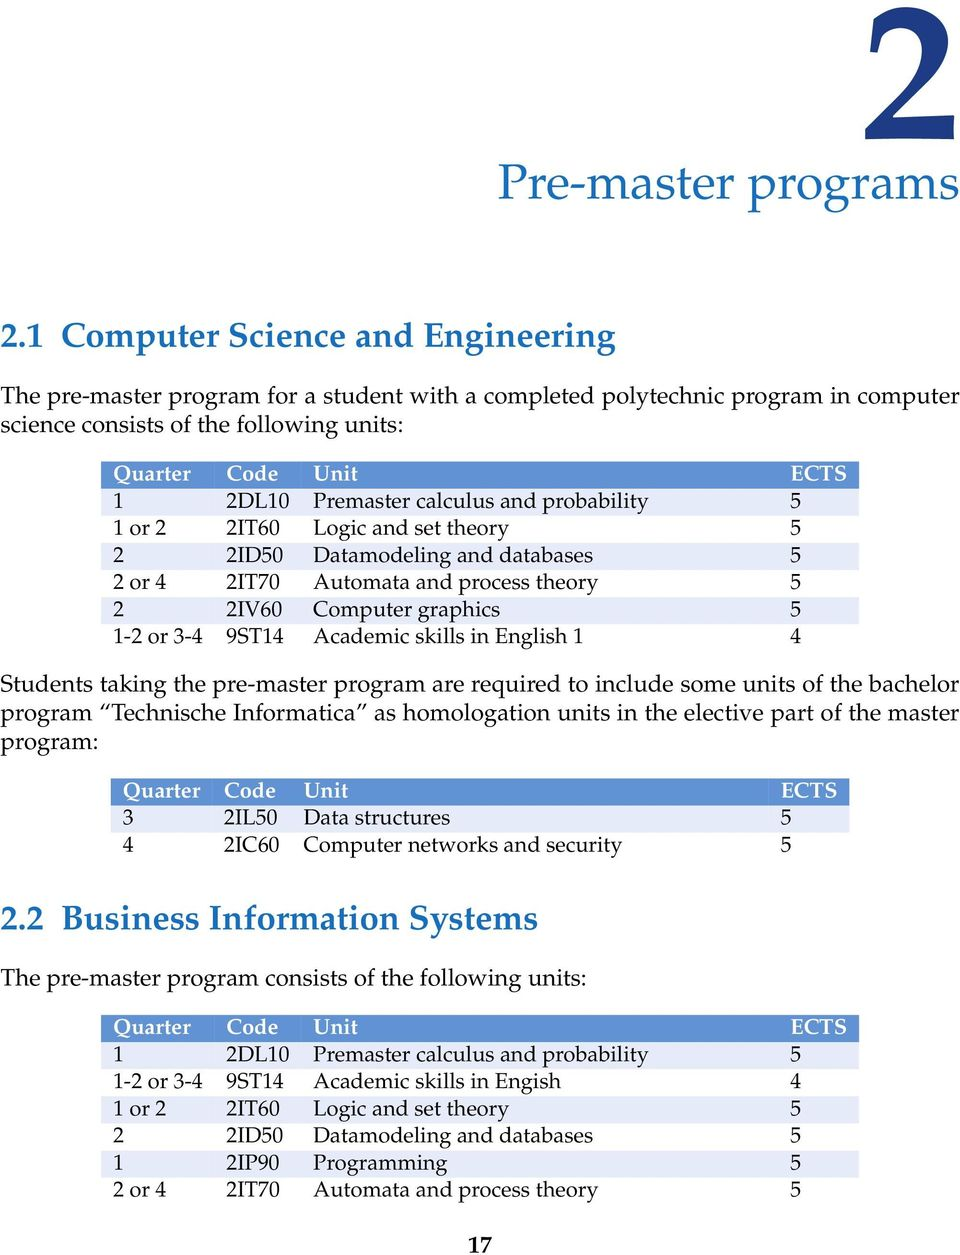 Premaster calculus and probability 5 1 or 2 2IT60 Logic and set theory 5 2 2ID50 Datamodeling and databases 5 2 or 4 2IT70 Automata and process theory 5 2 2IV60 Computer graphics 5 1-2 or 3-4 9ST14